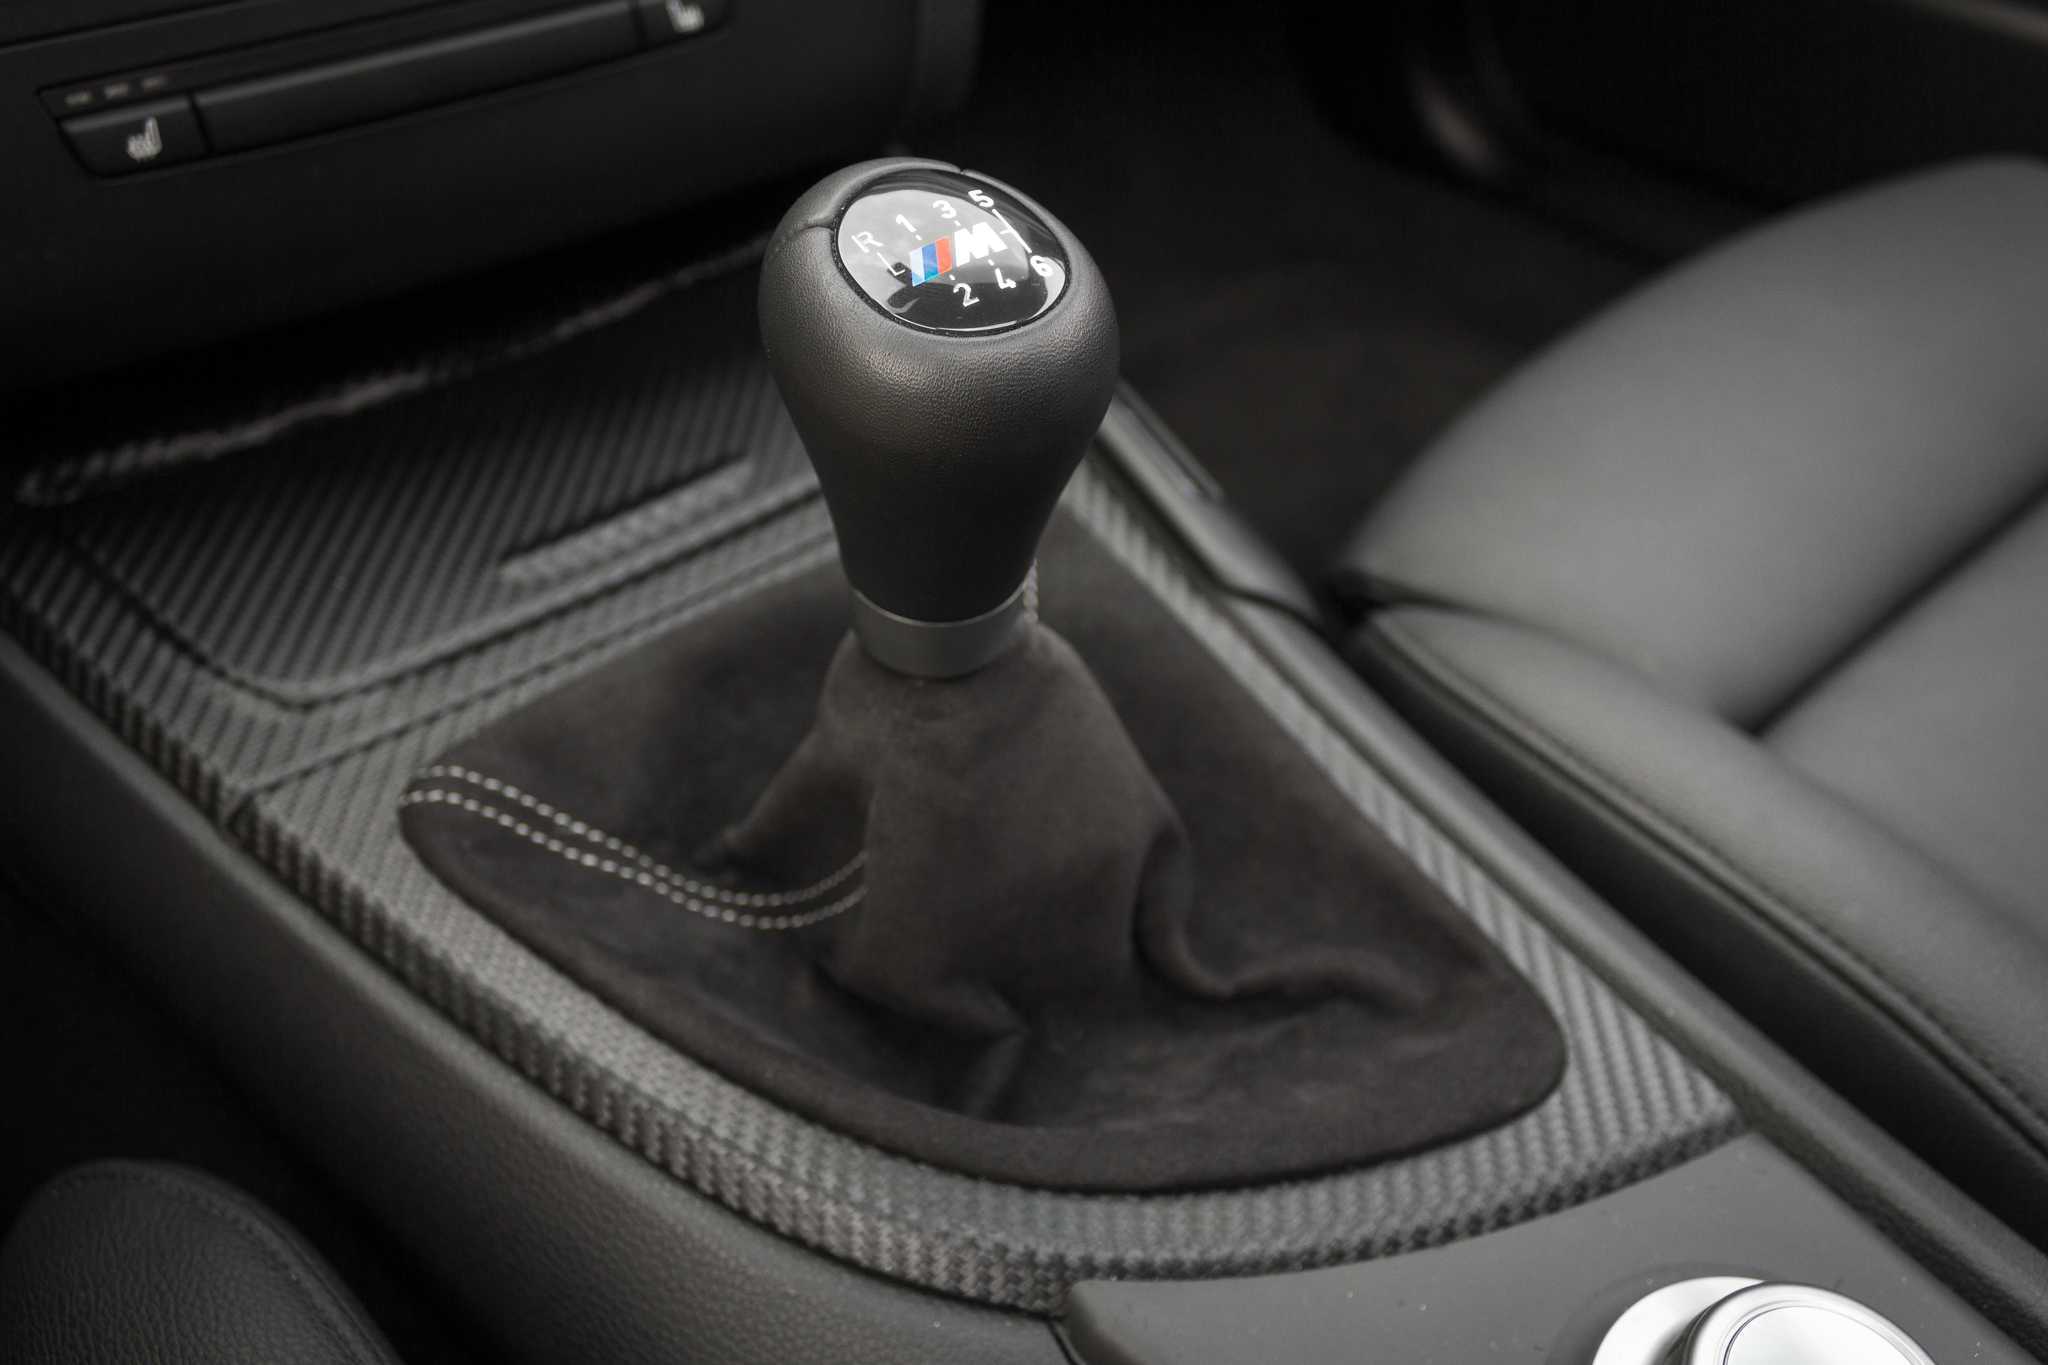 How To Remove OEM BMW Shift Knob